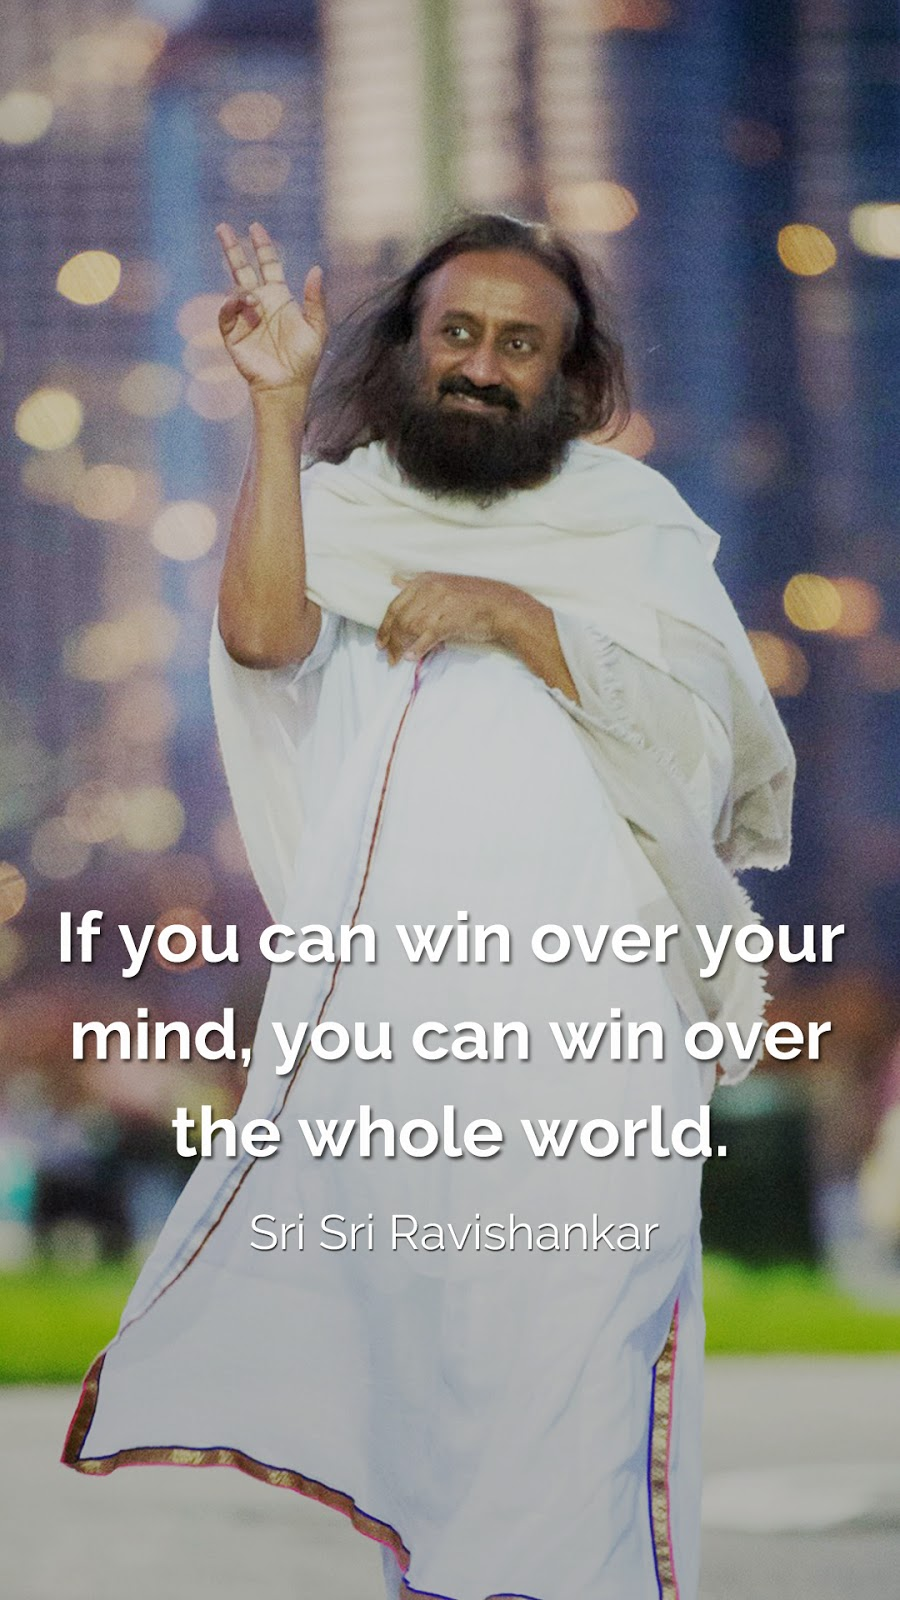 6 HD mobile wallpapers of Sri Sri Ravishankar guruji quotes - Turnspiritual.in, Turn Spiritual